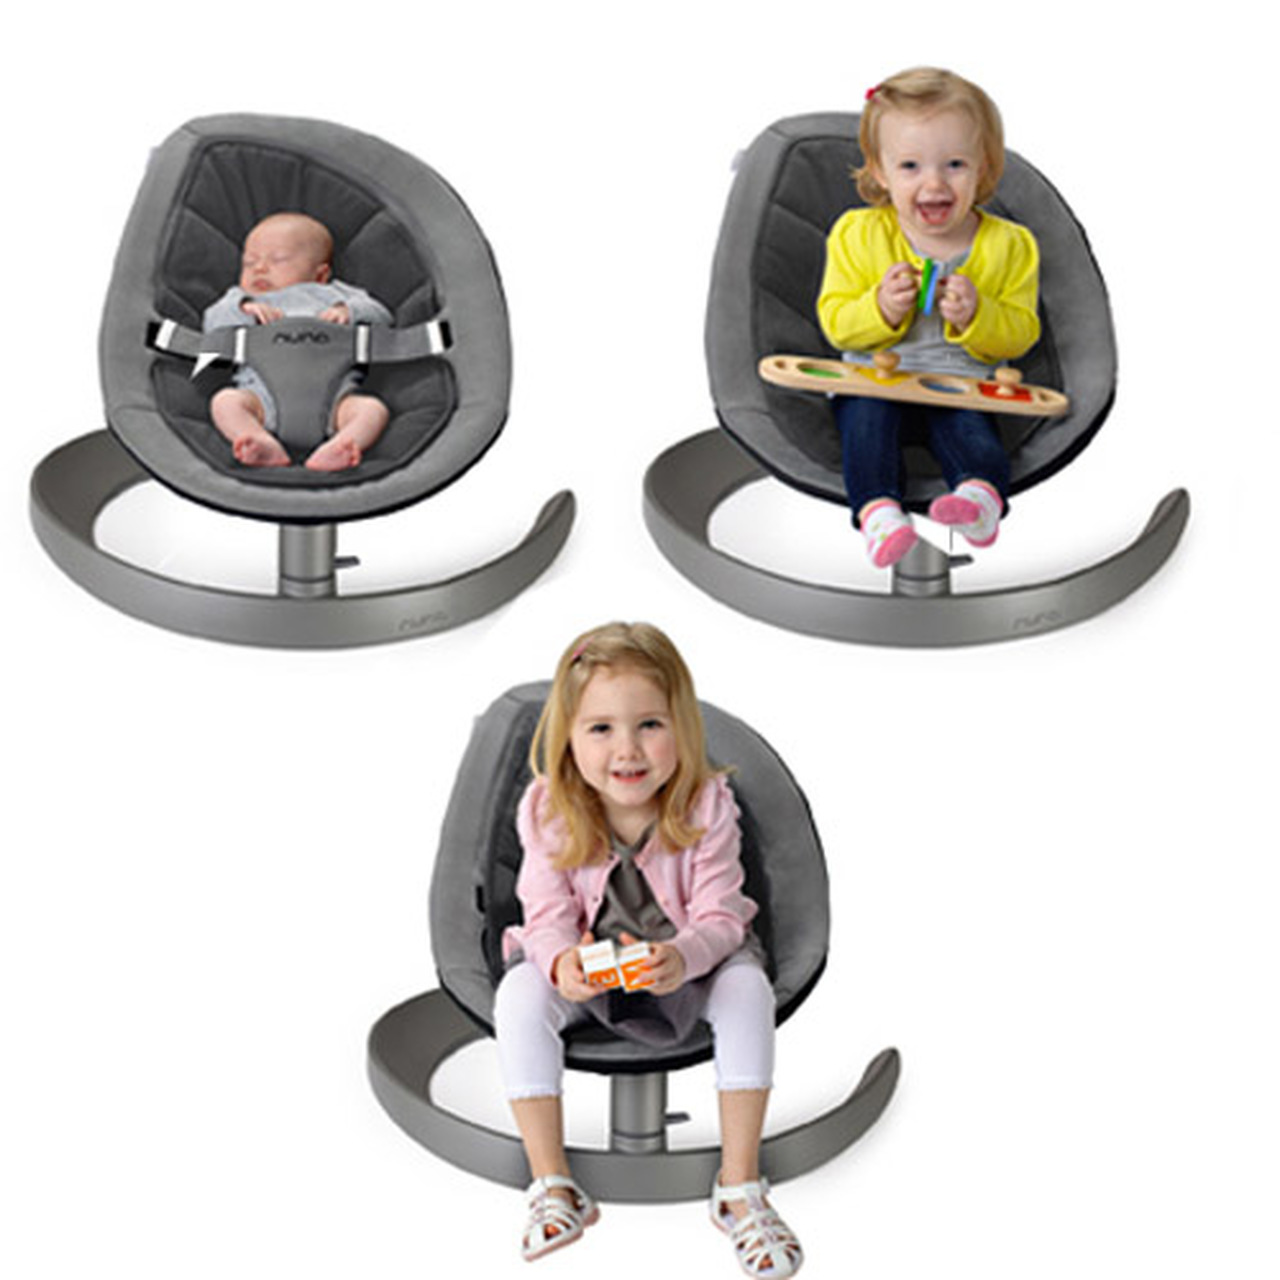 Nuna Leaf Curv Bouncer